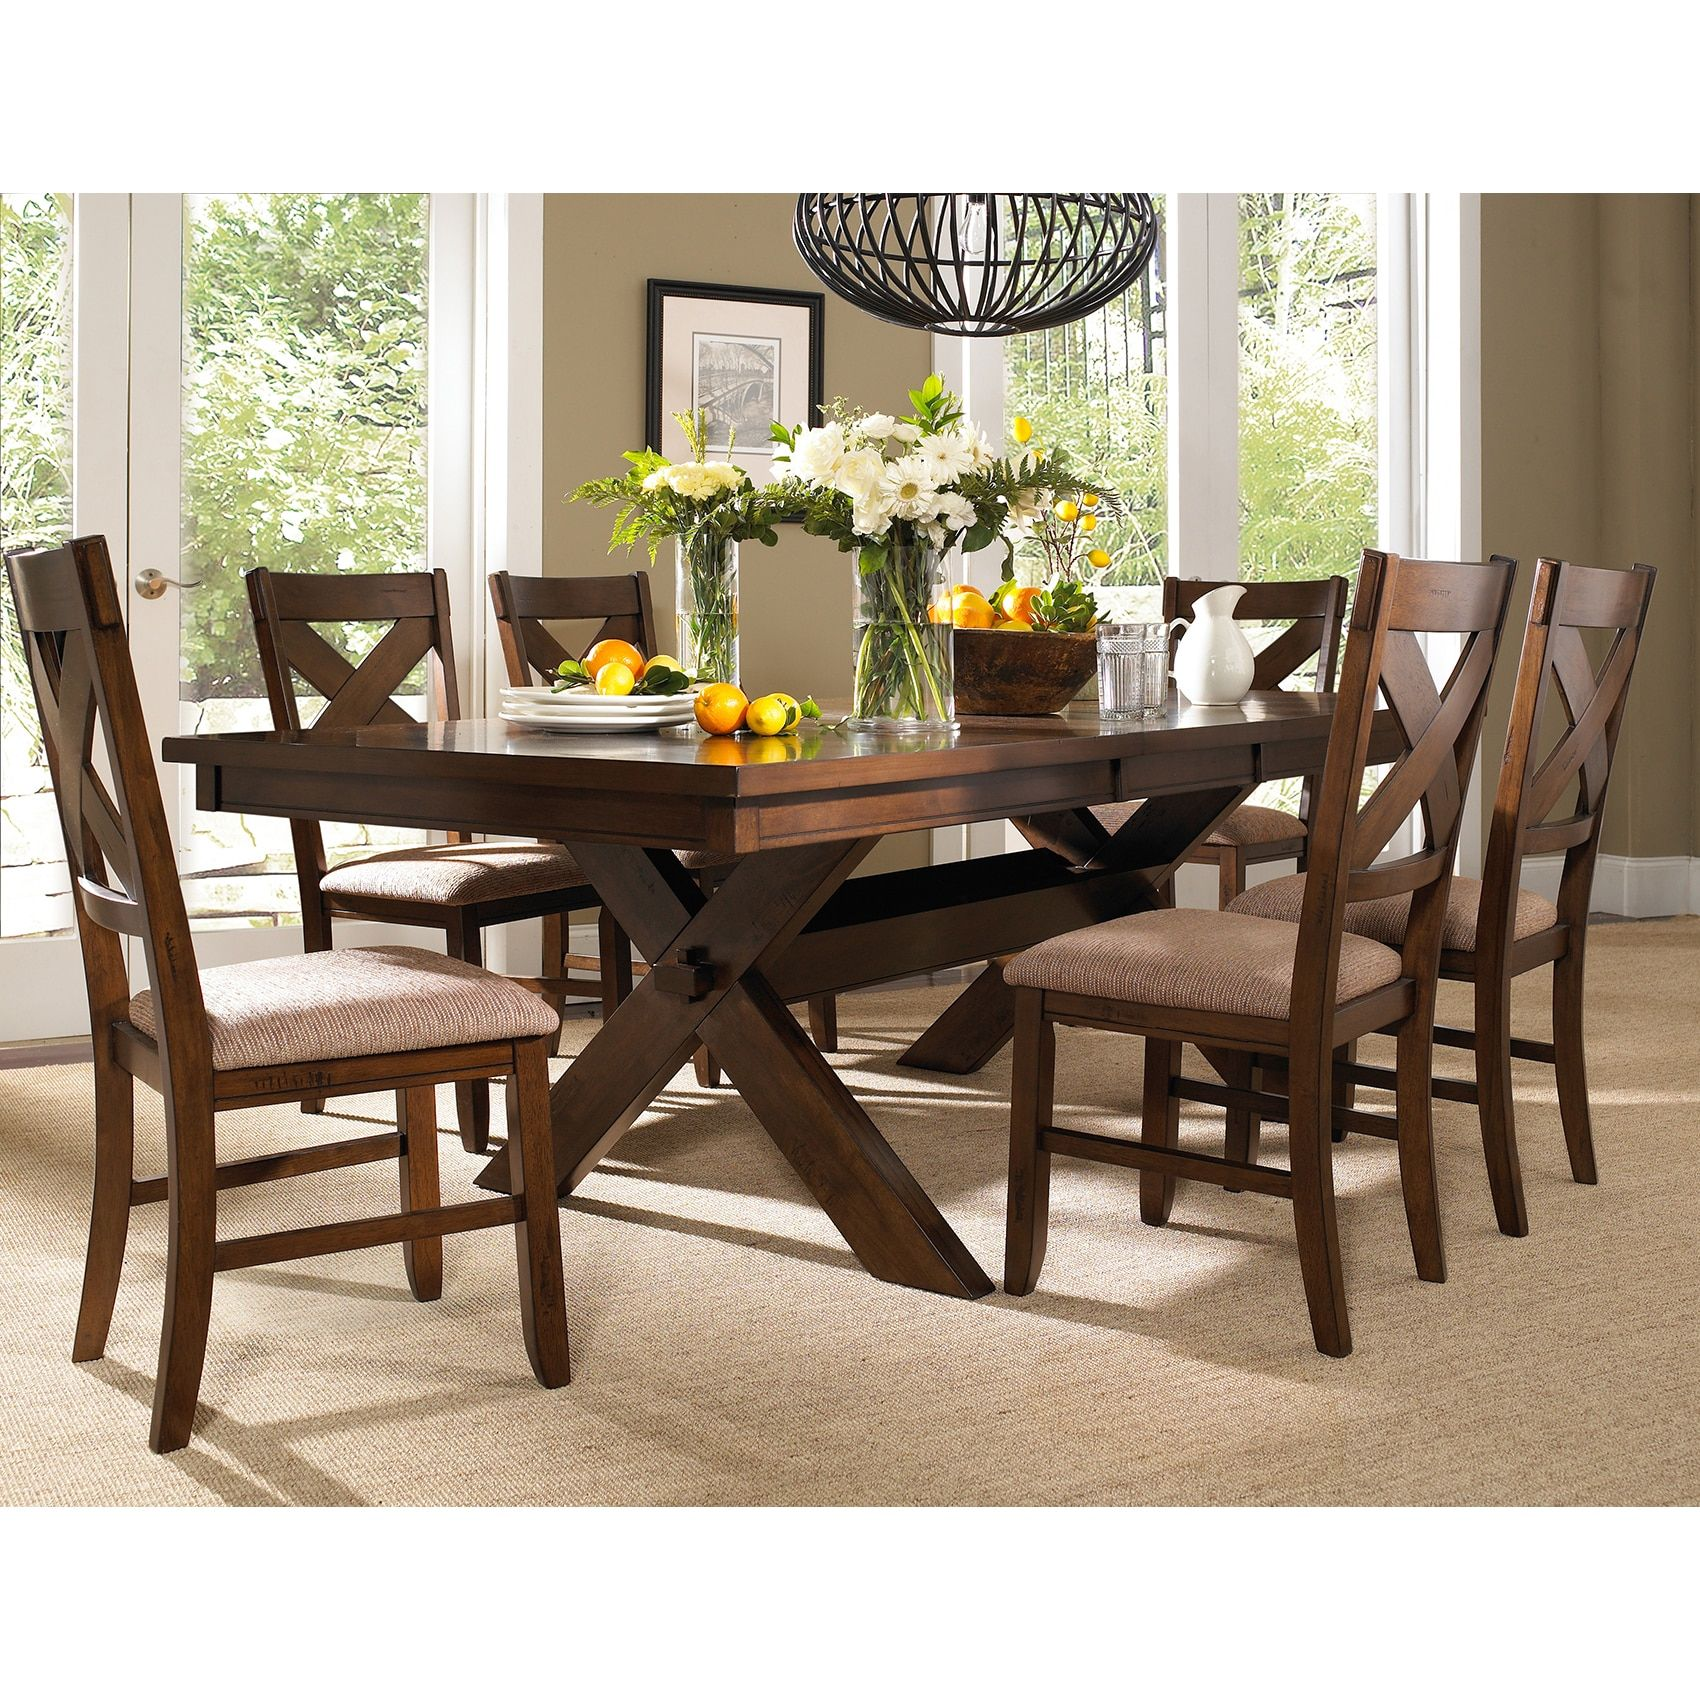 Best Deals On Dining Table And Chairs: Gracewood Hollow Doctorow 7-piece Solid Wood Dining Set